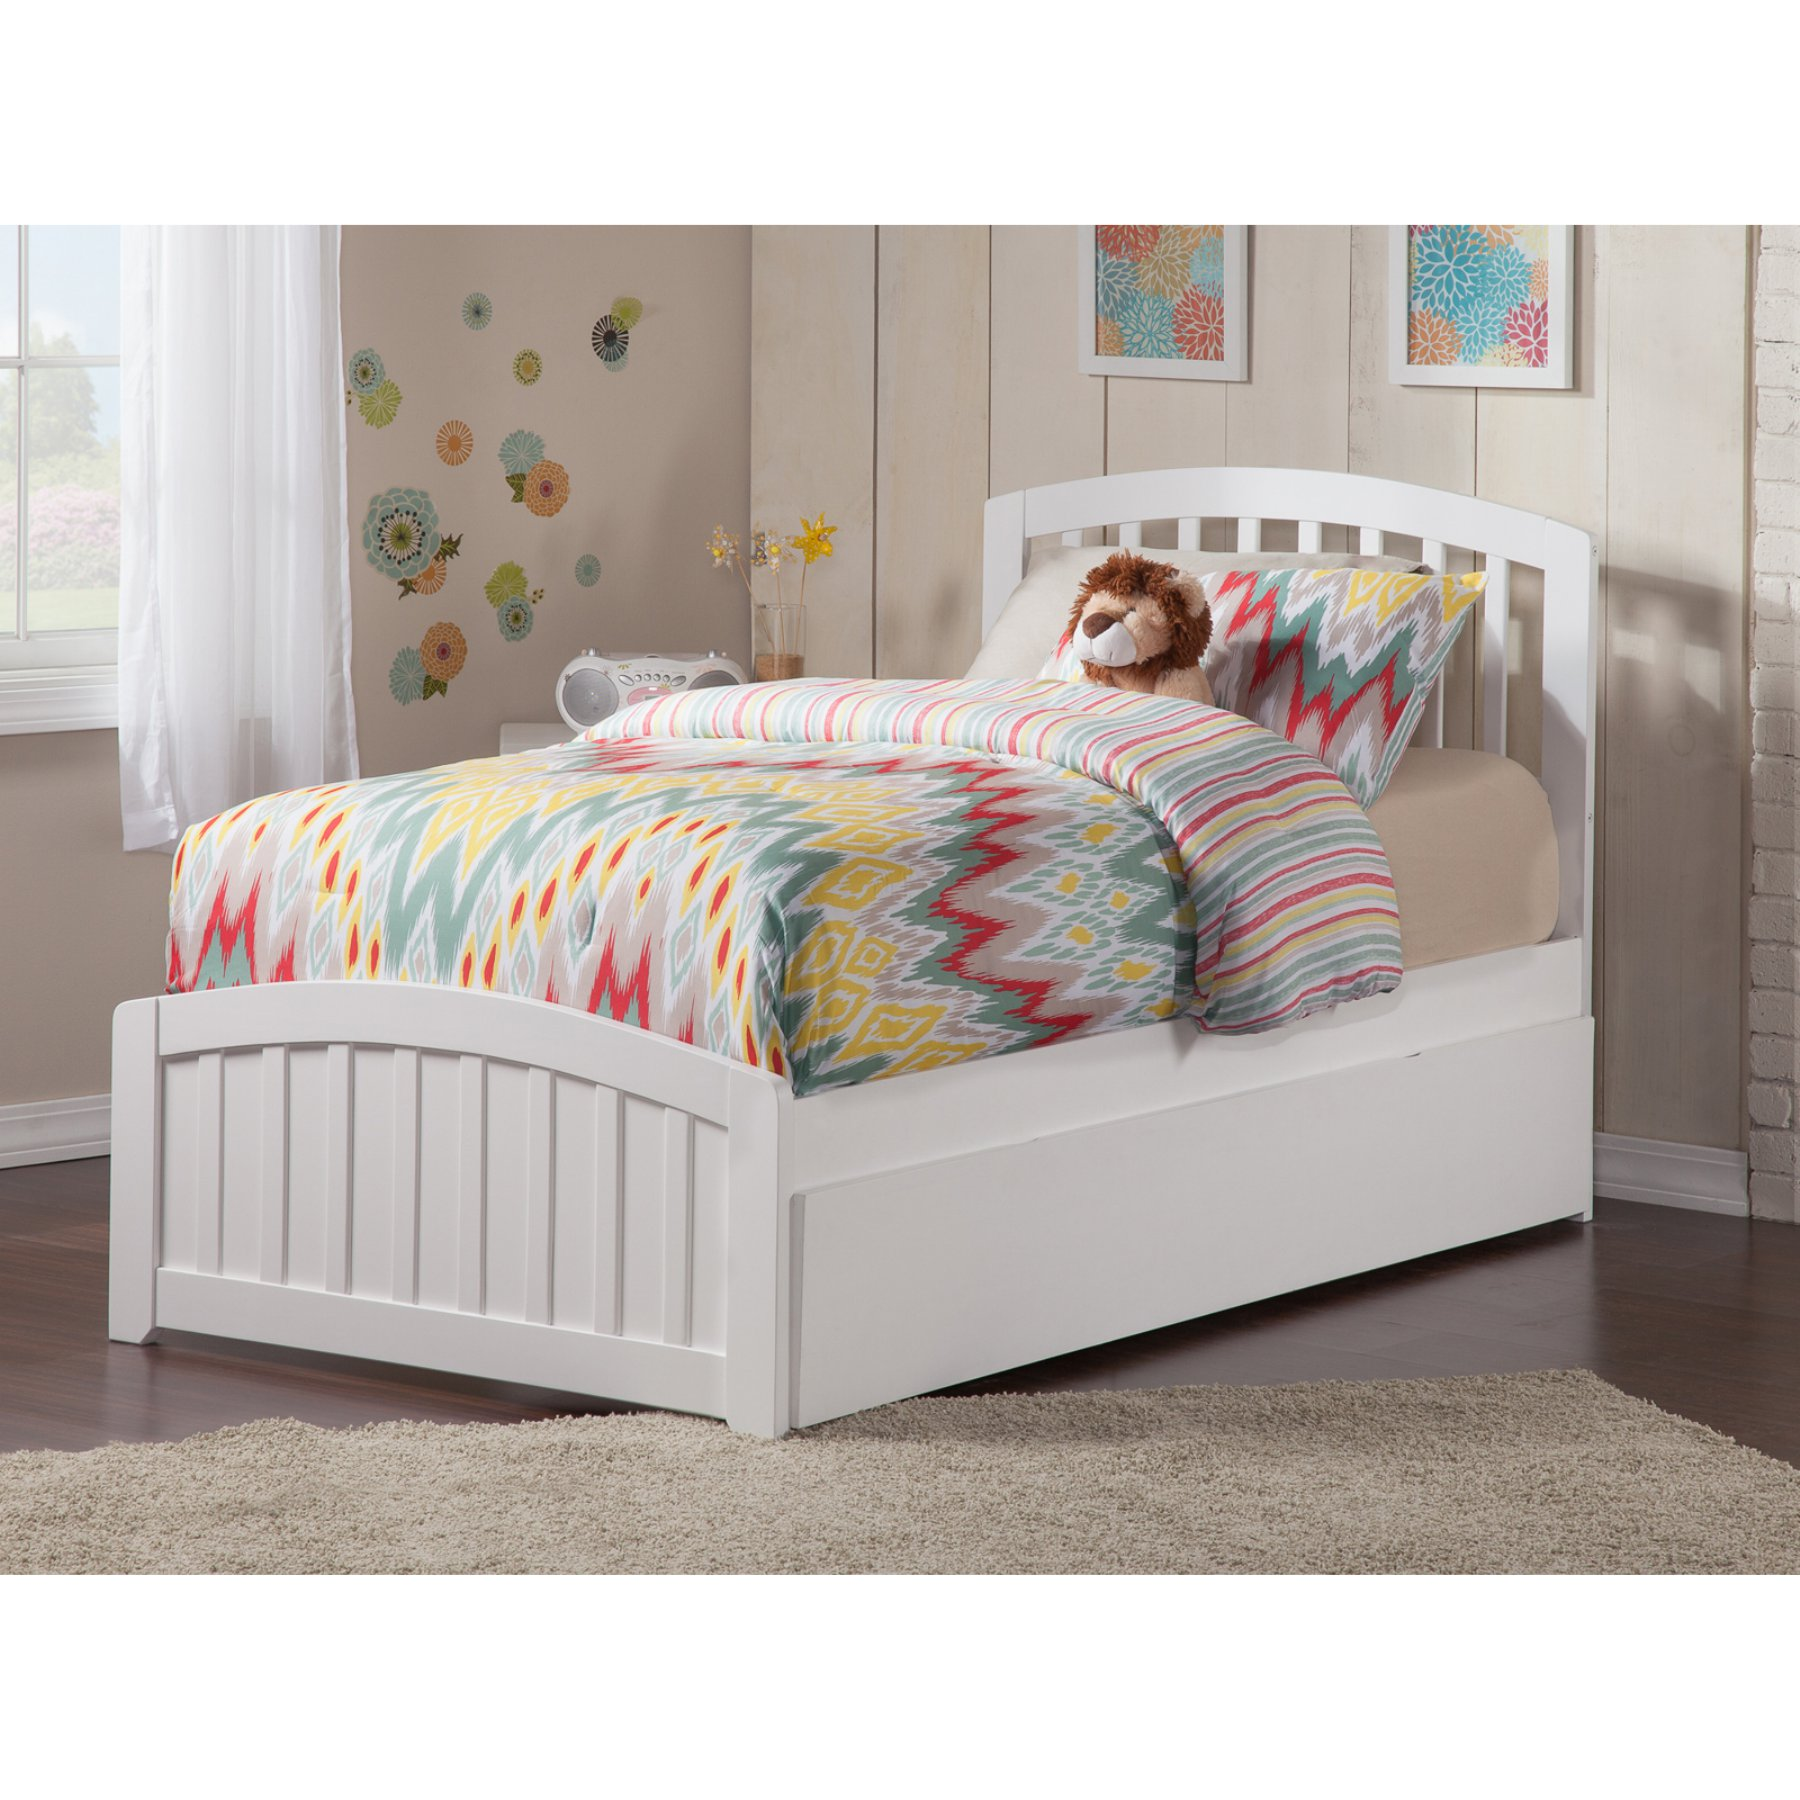 Atlantic Furniture Richmond Platform Bed with Matching